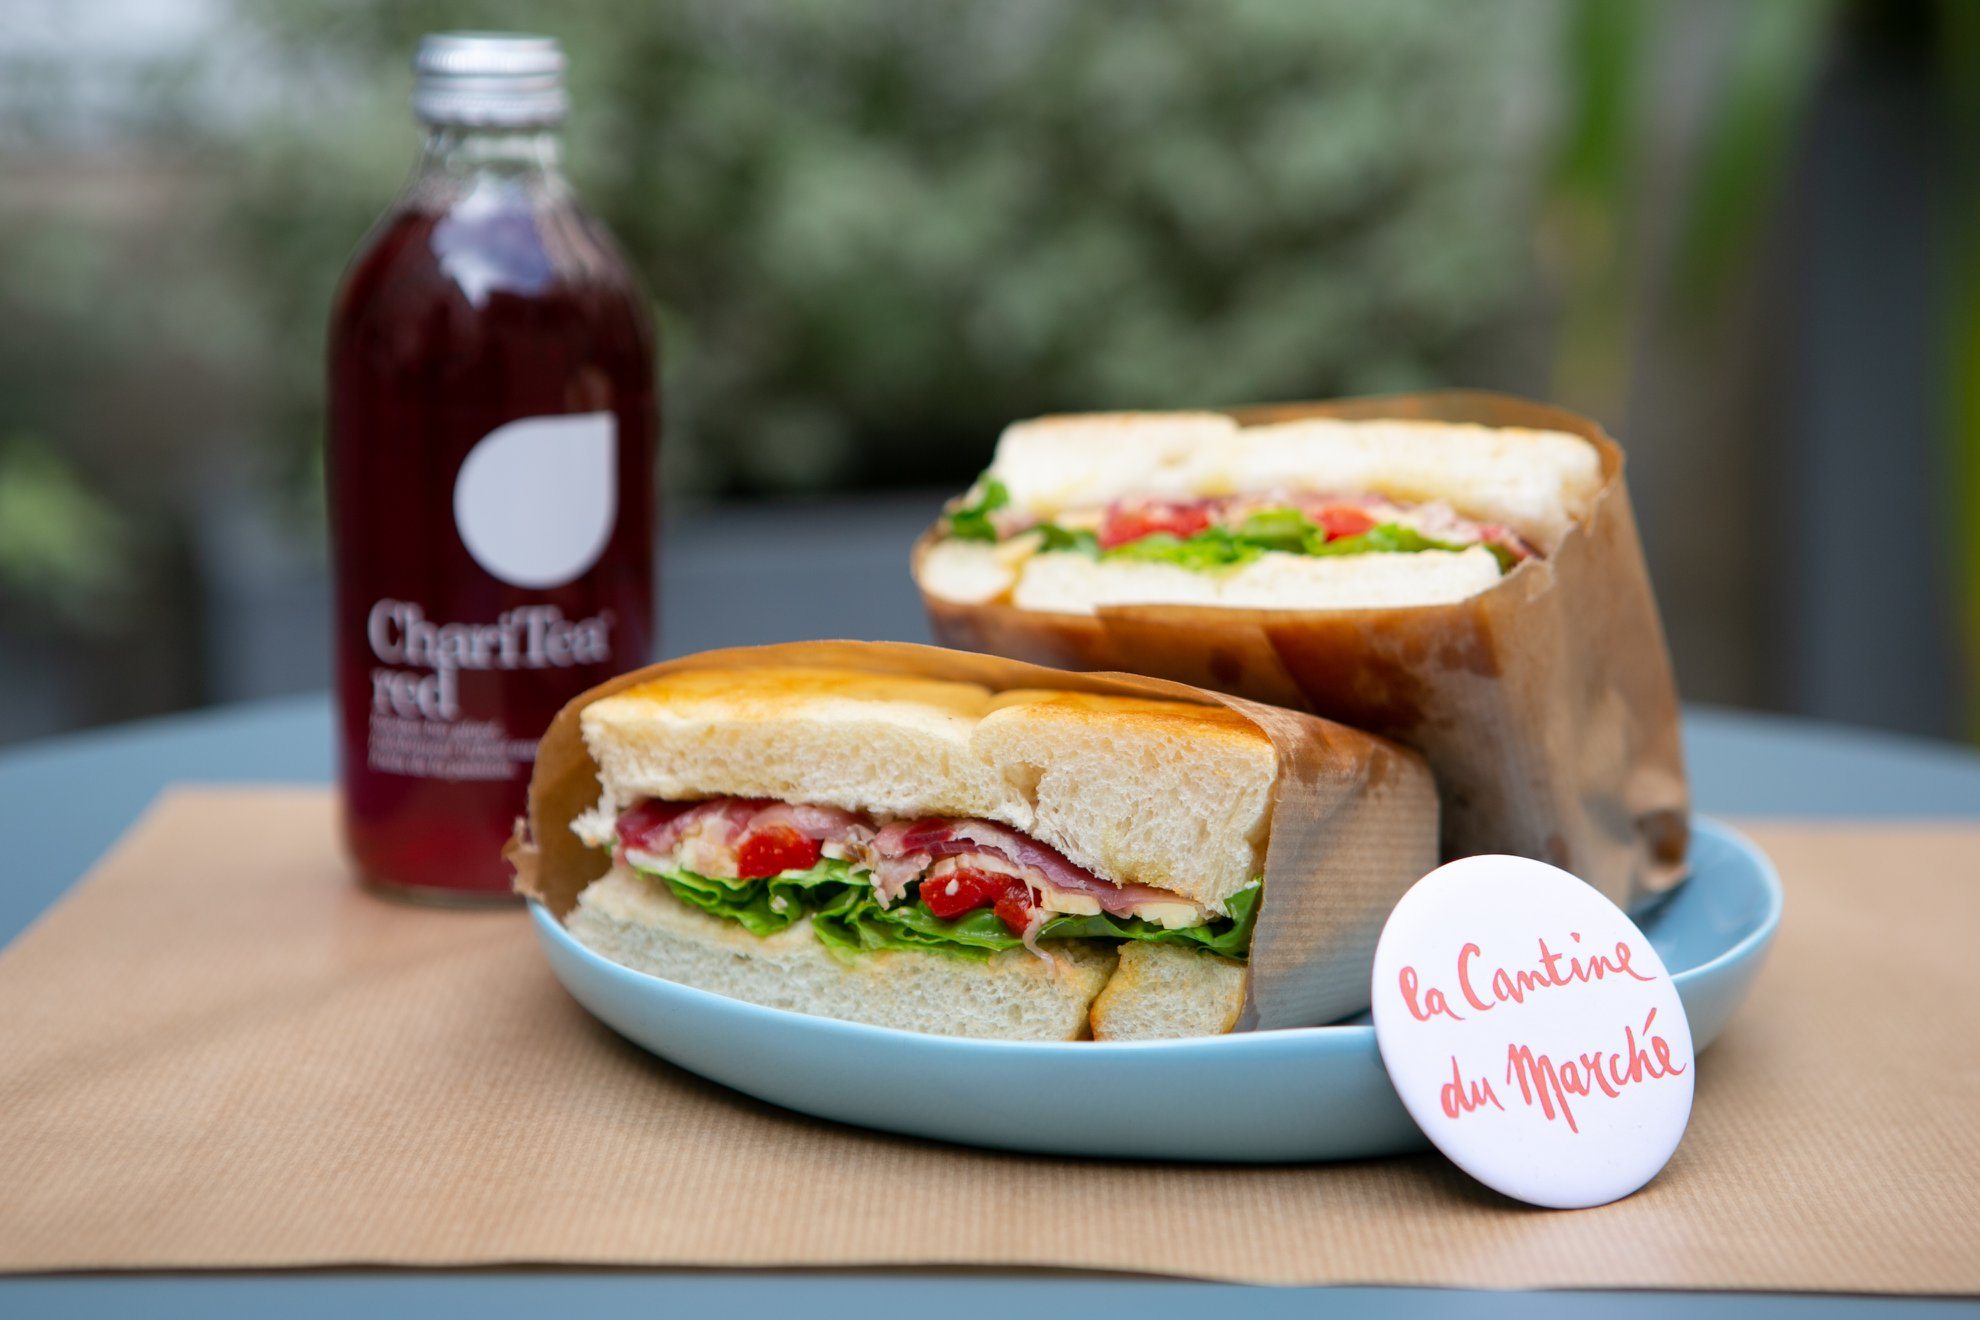 Sustainable food in Paris at La Cantine du Marché, where they serve fresh-pressed juices and teas like this Chari Tea, and homemade ham salad sandwiches on a blue plate.